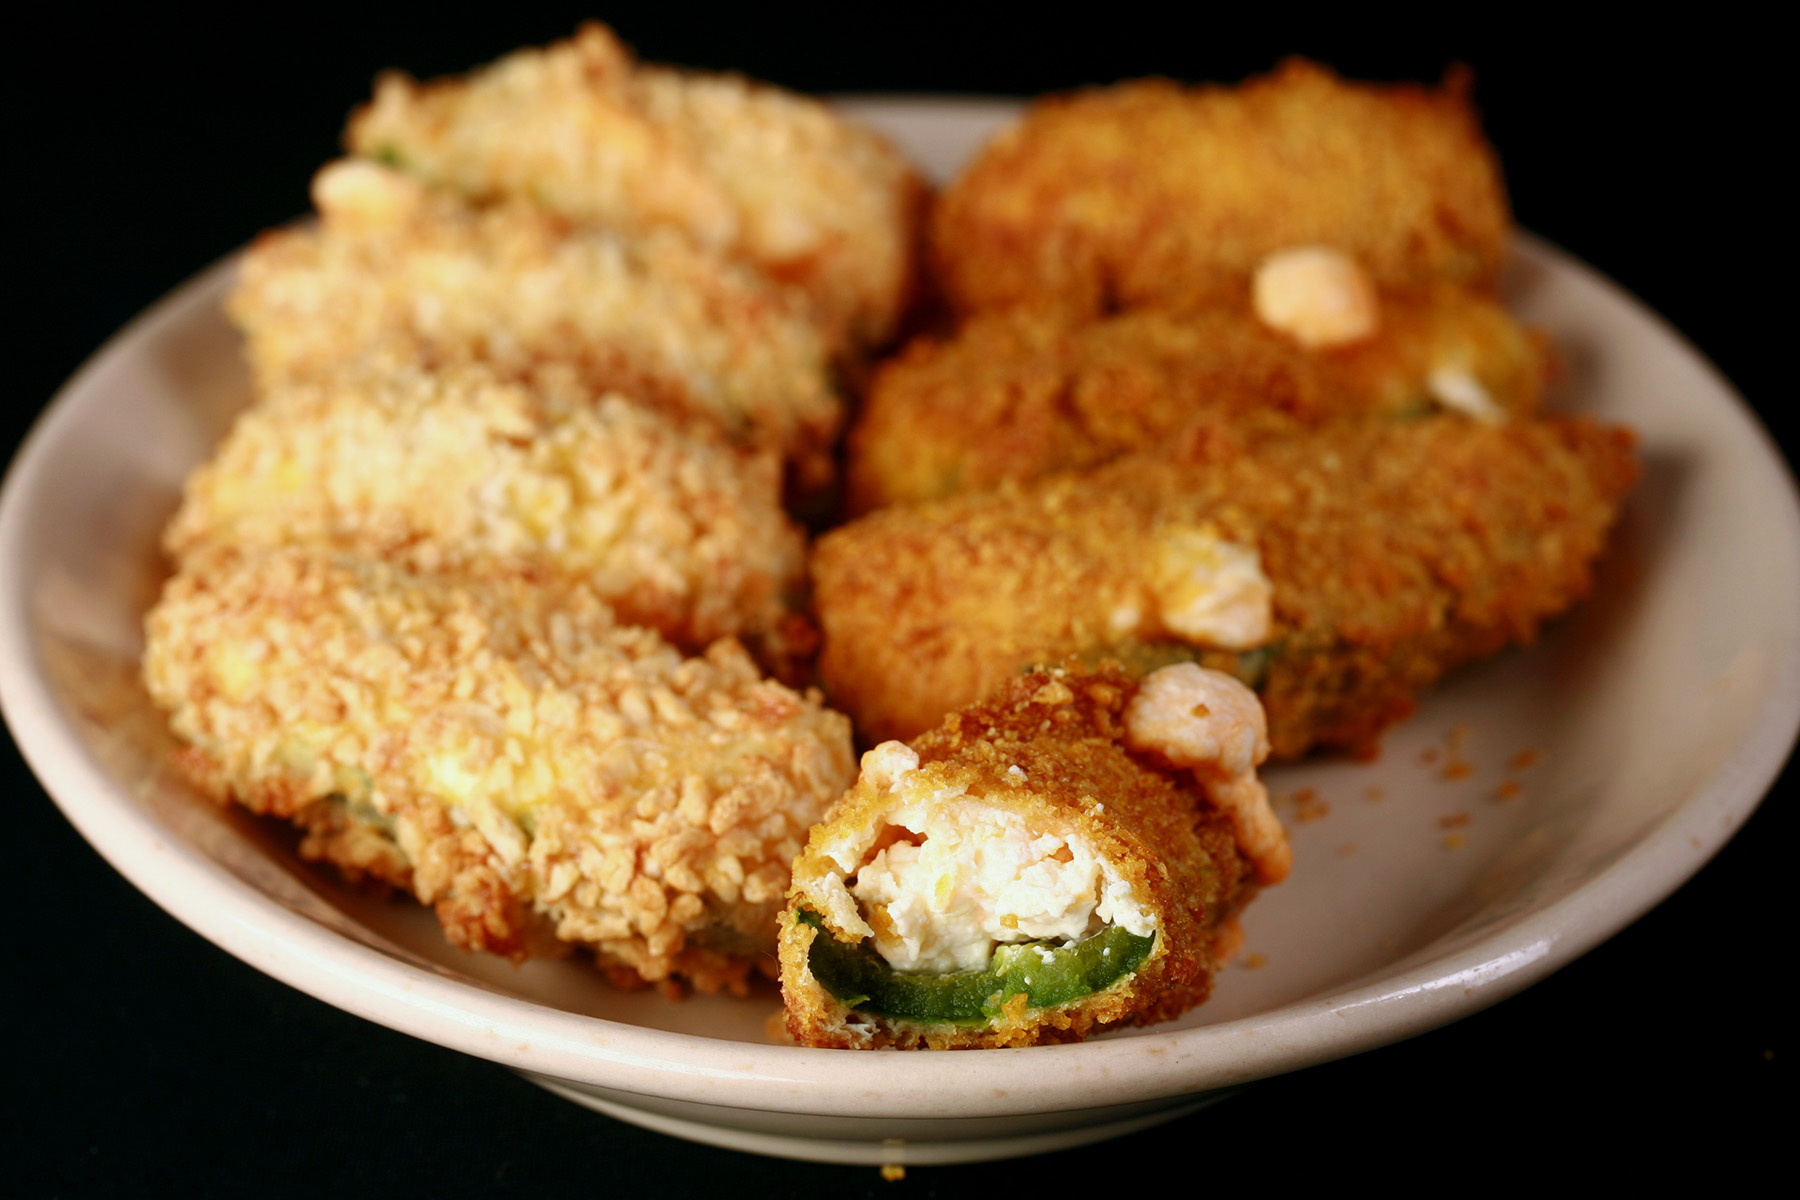 A close up view of air fryer gluten-free jalapeno poppers. One has a bite taken out of it.